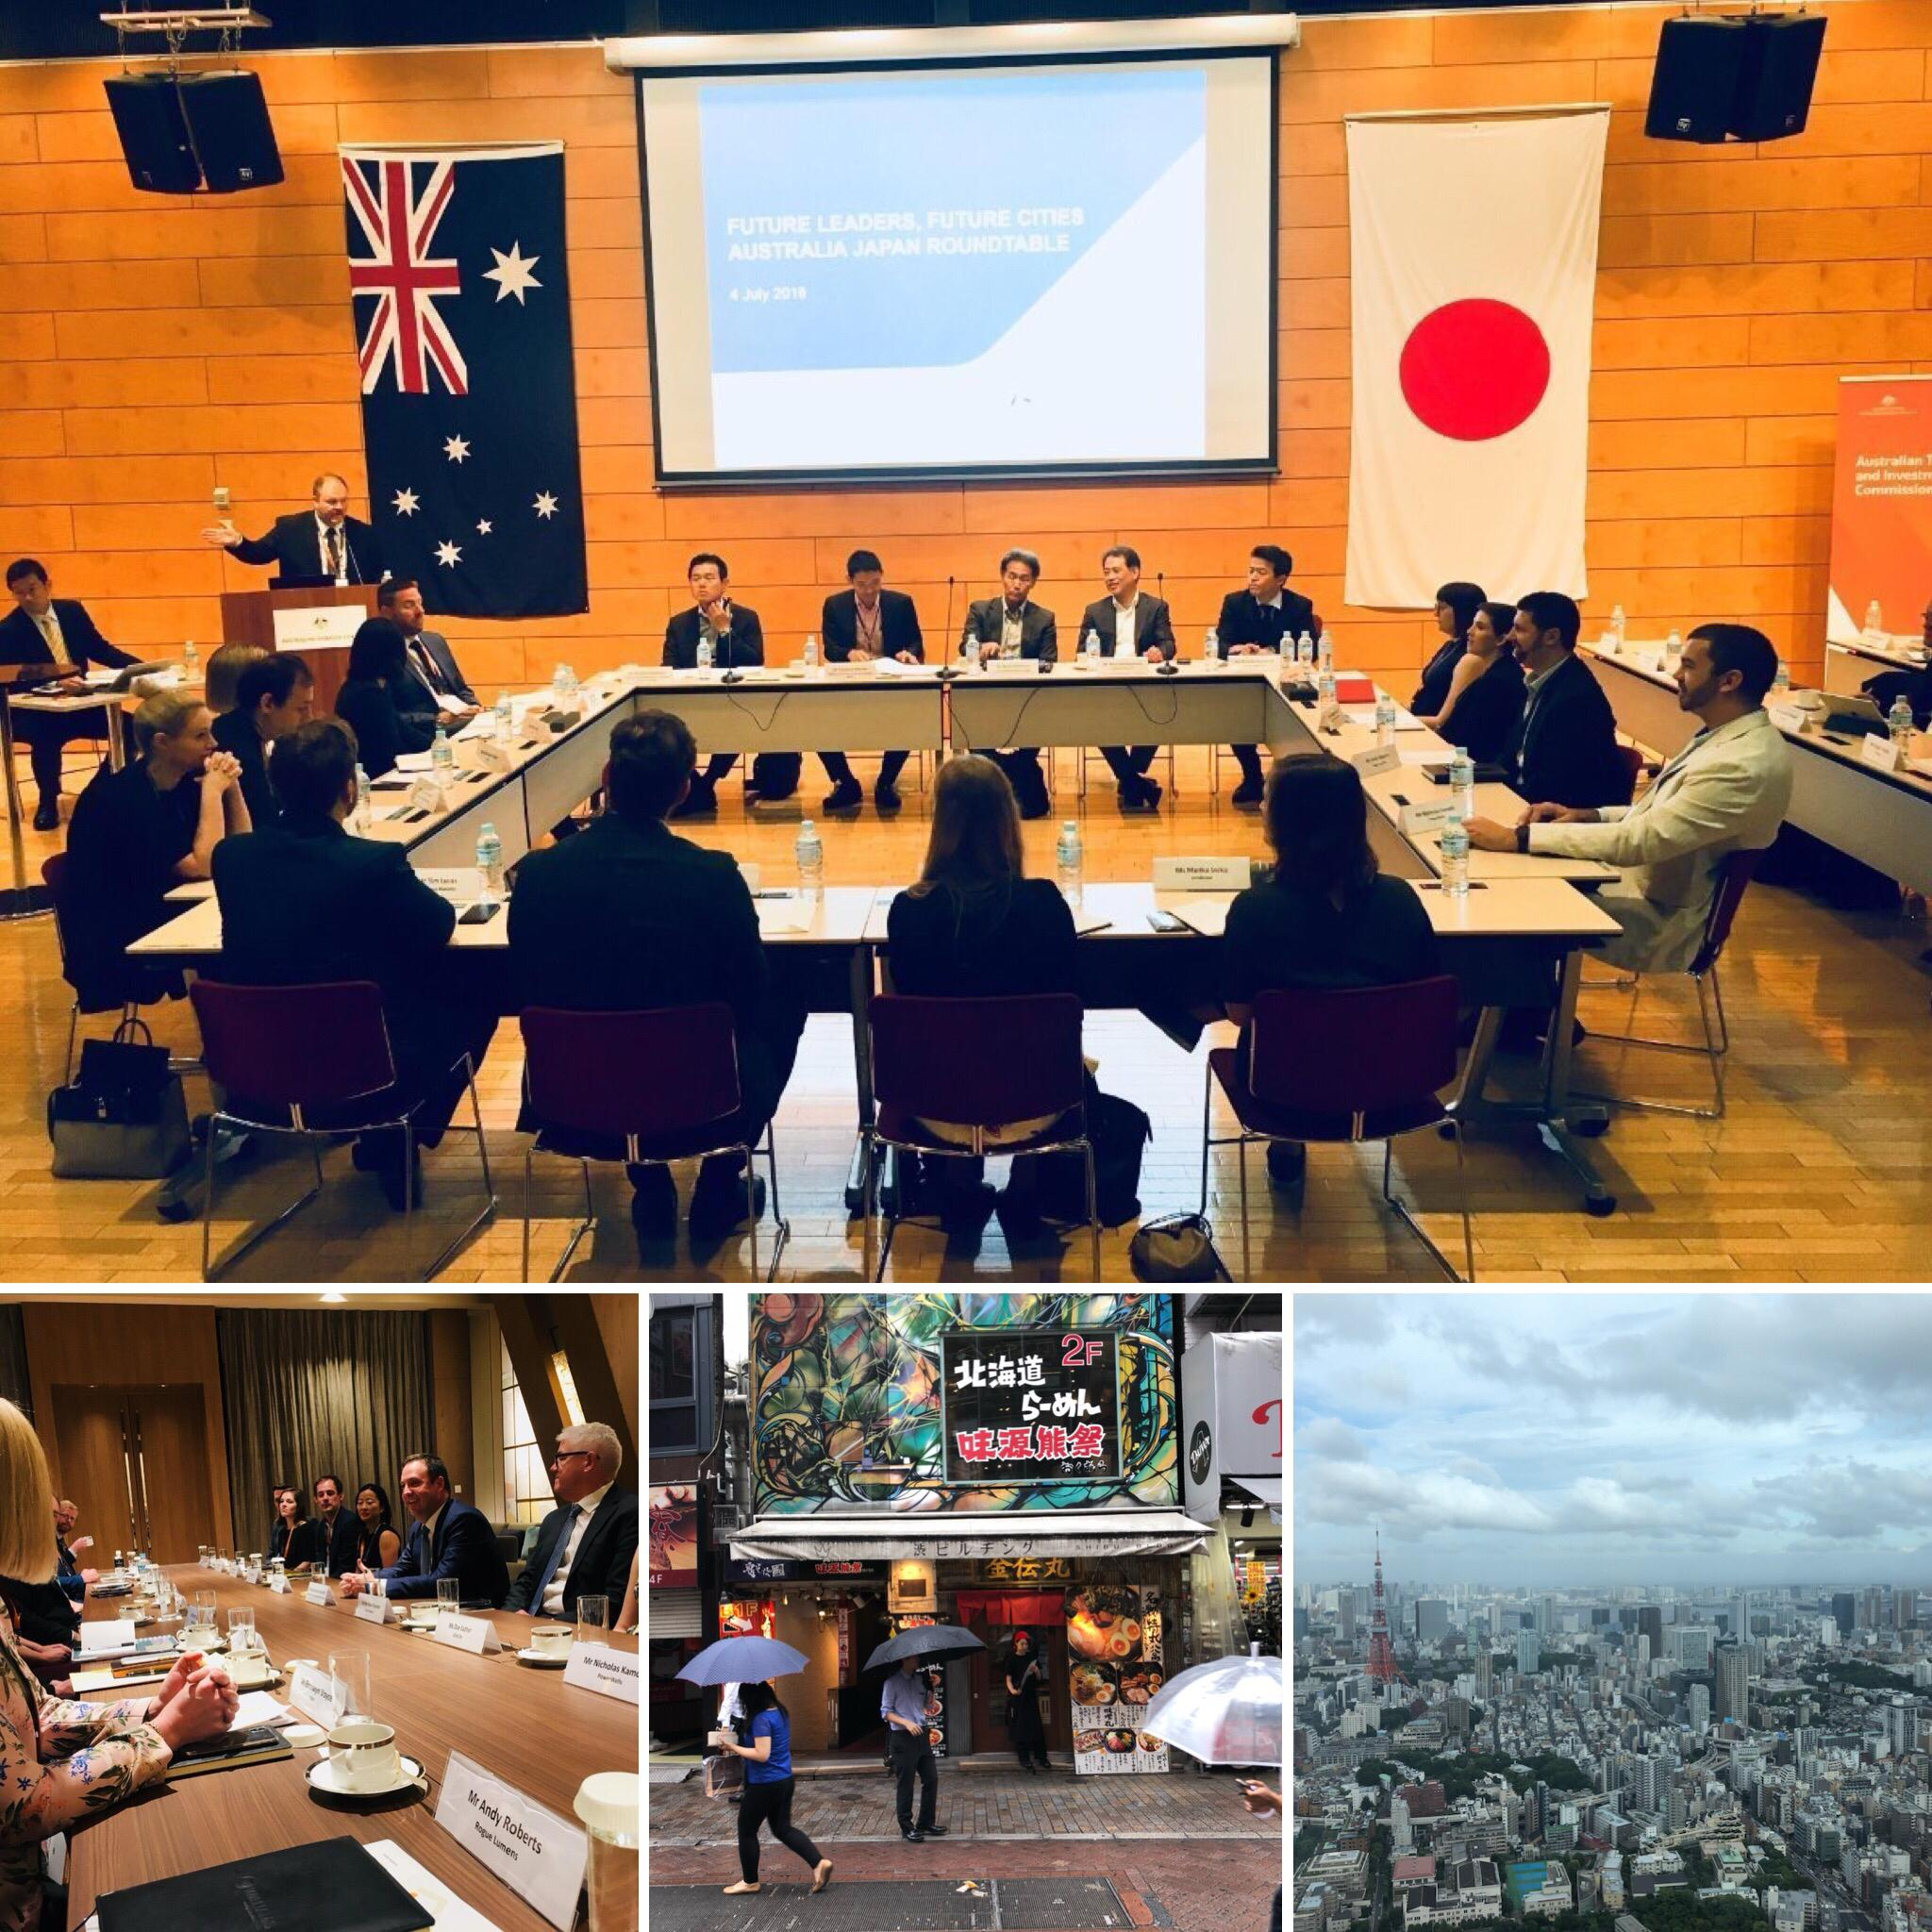 Future Leaders Future Cities - Tokyo - Dan Barr of the Better Cities Group was delighted to be invited to join the inaugural Future Leaders Future Cities delegation to Tokyo in July 2018. The delegation was led by the Honourable Steven Ciobo with a focus on fostering strong smart city relationships between Japan and Australia.